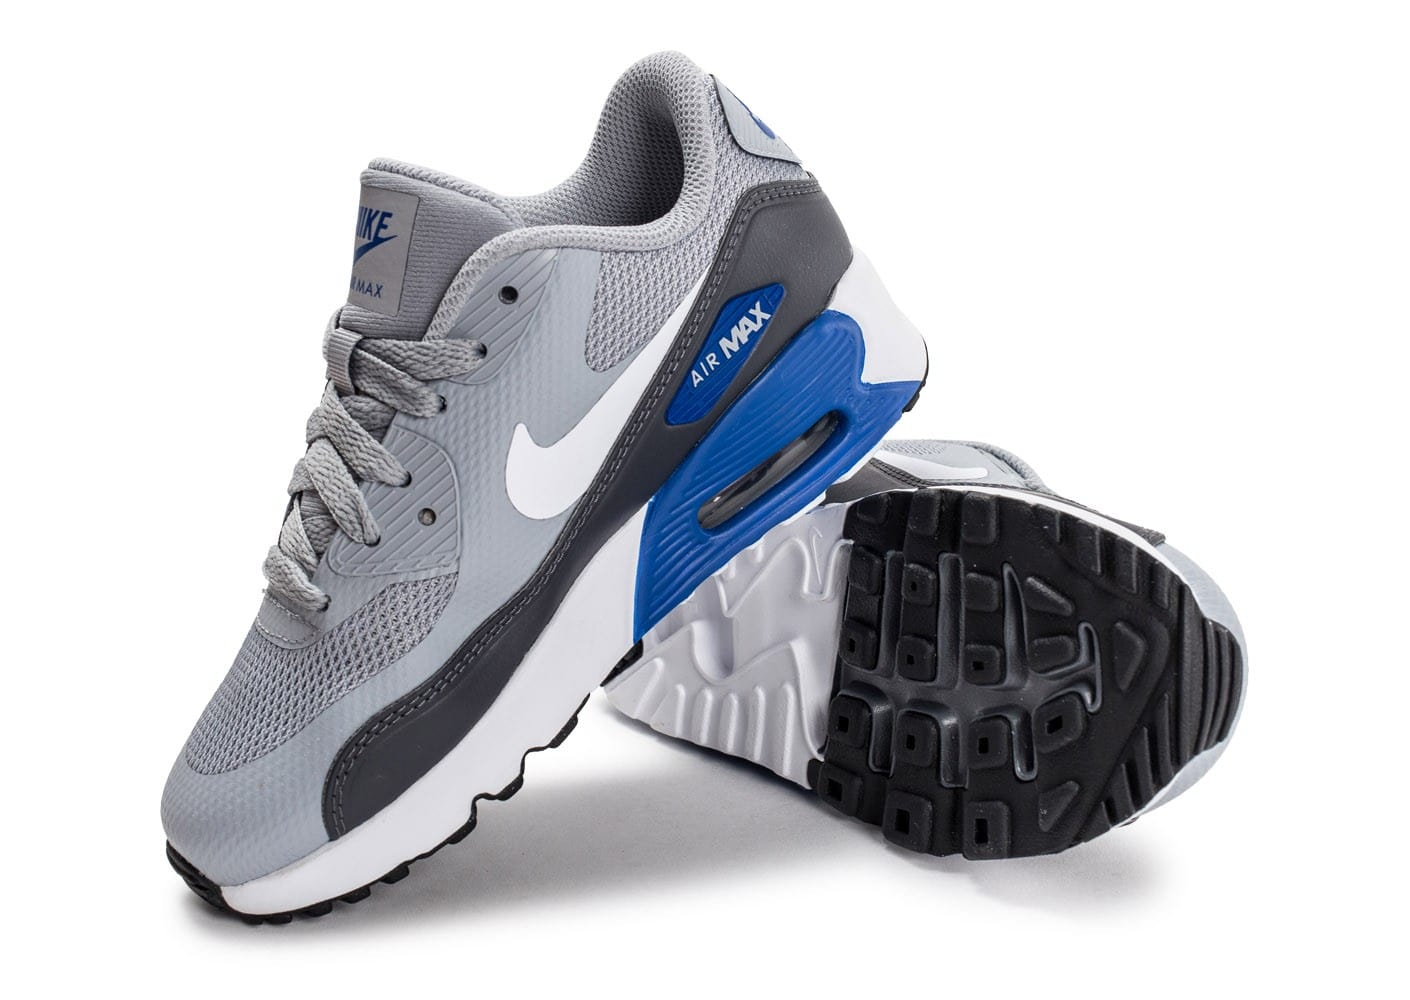 newest collection a1171 d6ff4 ... Chaussures Nike Air Max 90 Ultra 2.0 Ultra Enfant grise vue avant ...